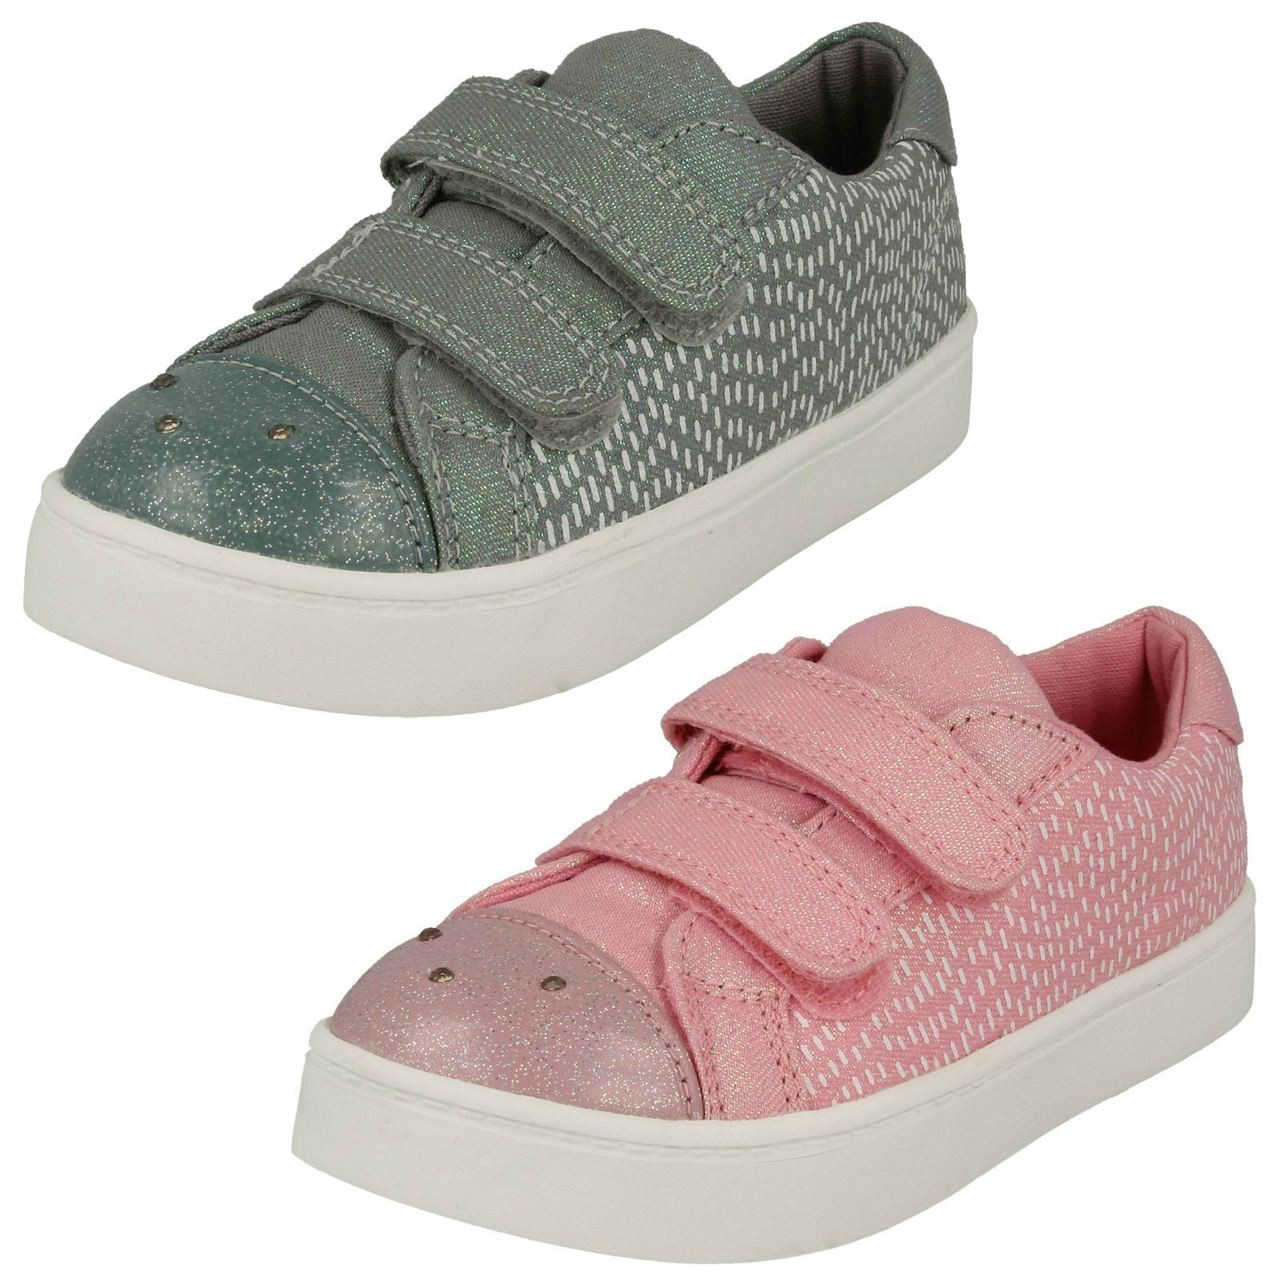 Girls Clarks Casual Canvas Shoes *Gracie Bea*